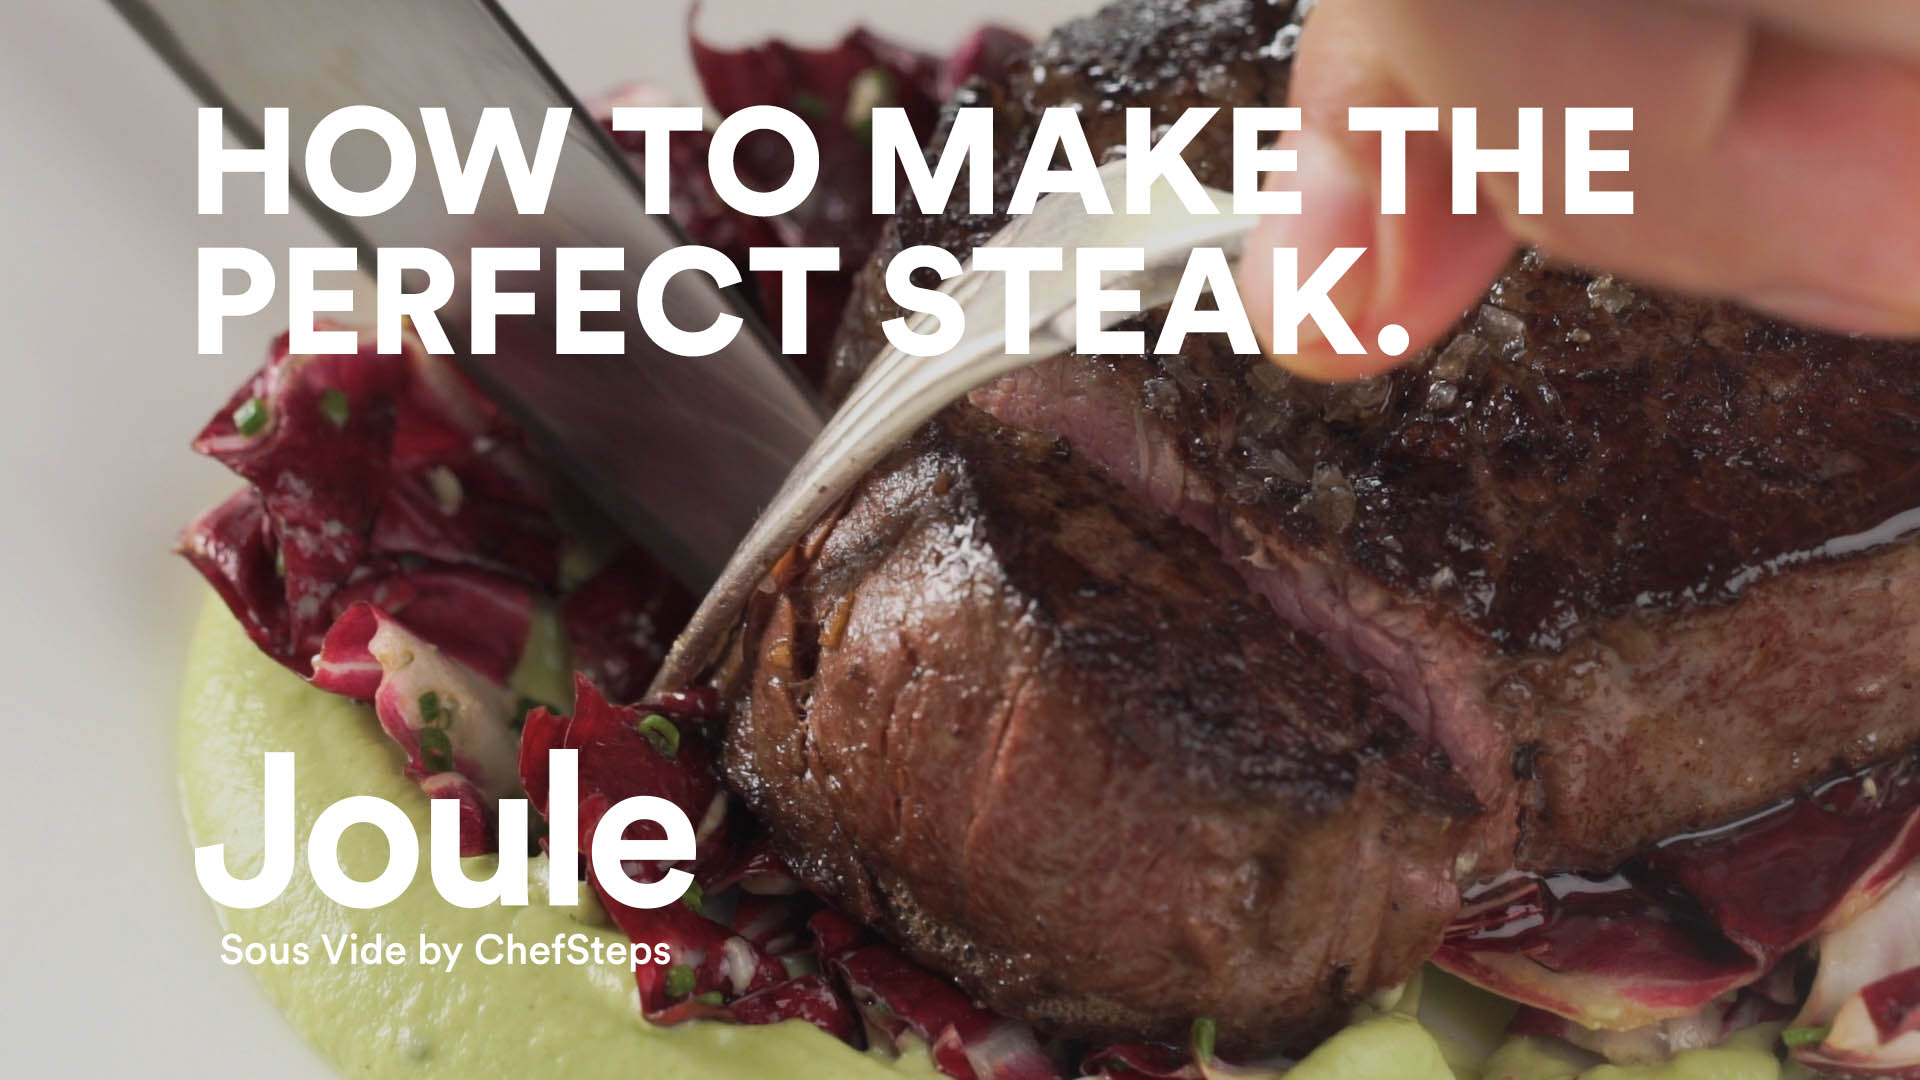 Joule   How to Make the Perfect Steak